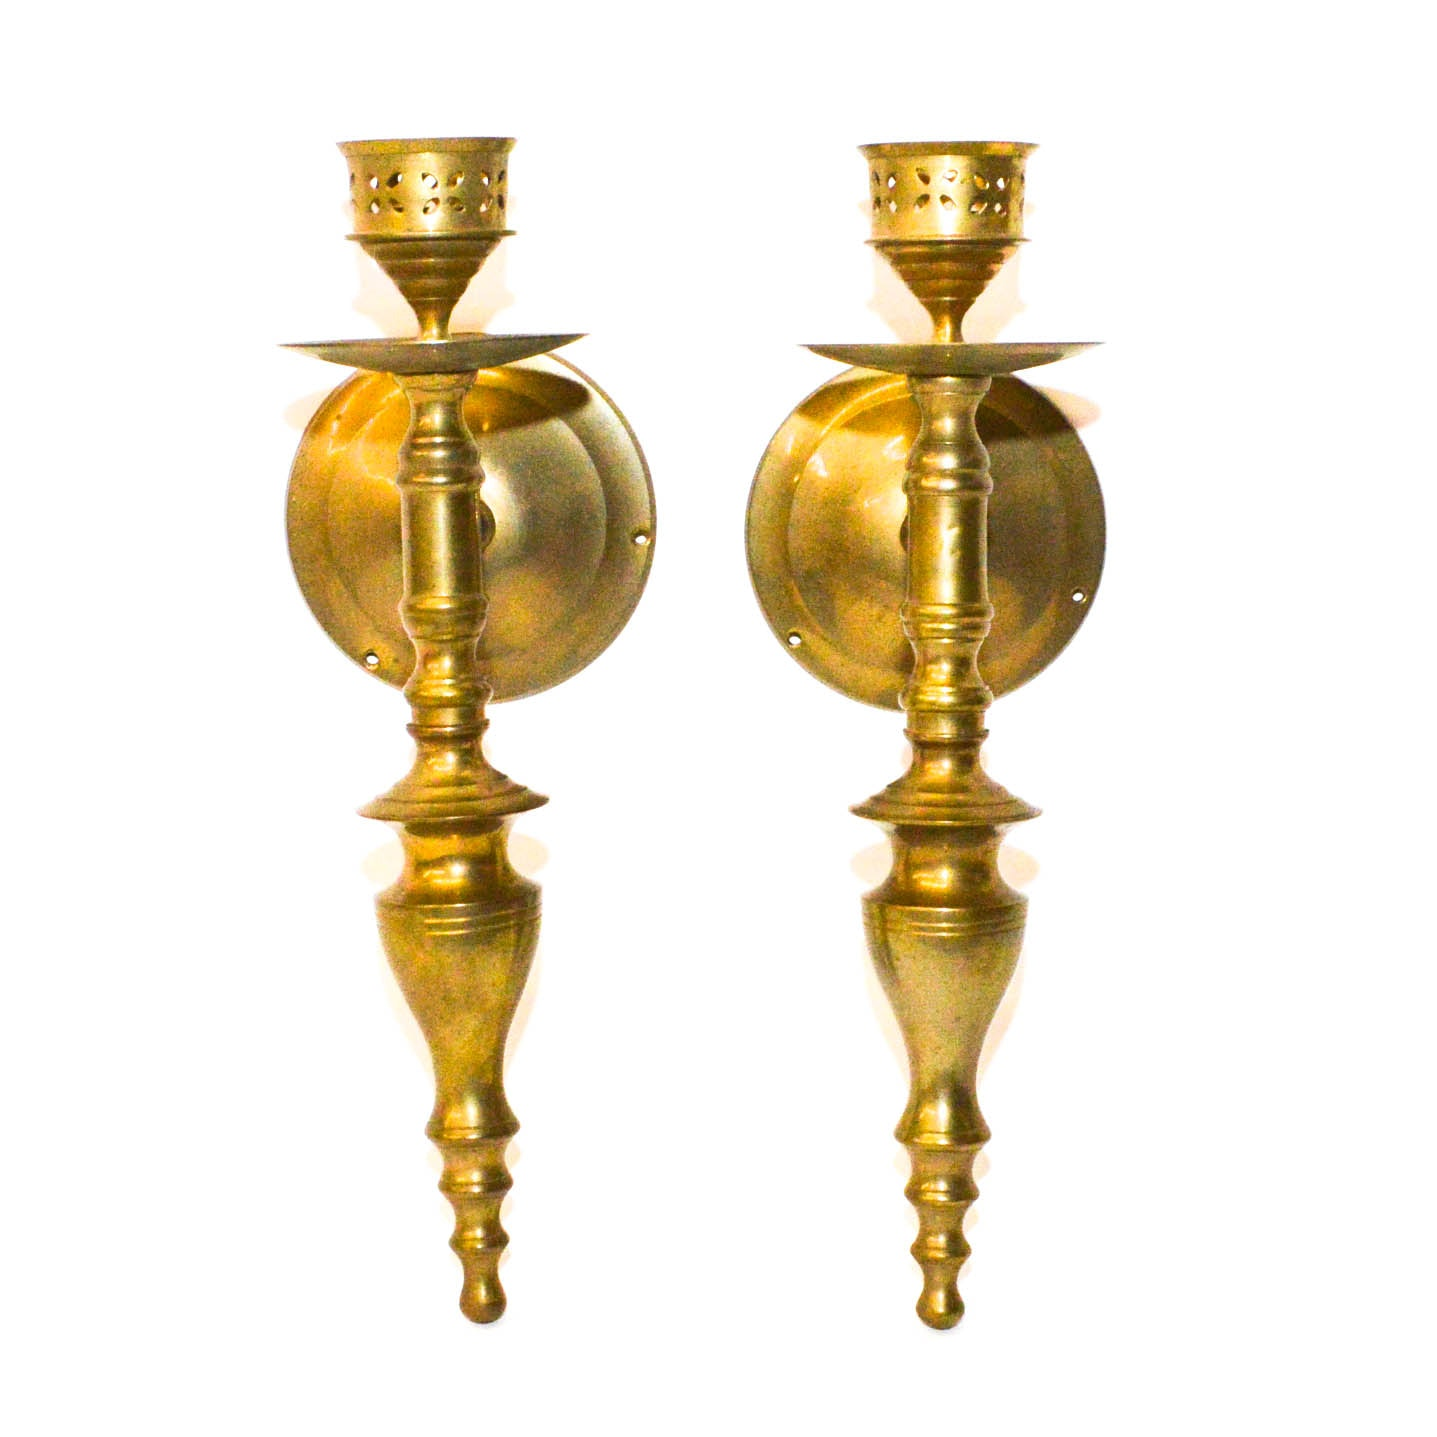 PRIORITY-Pair of Brass Candle Sconces